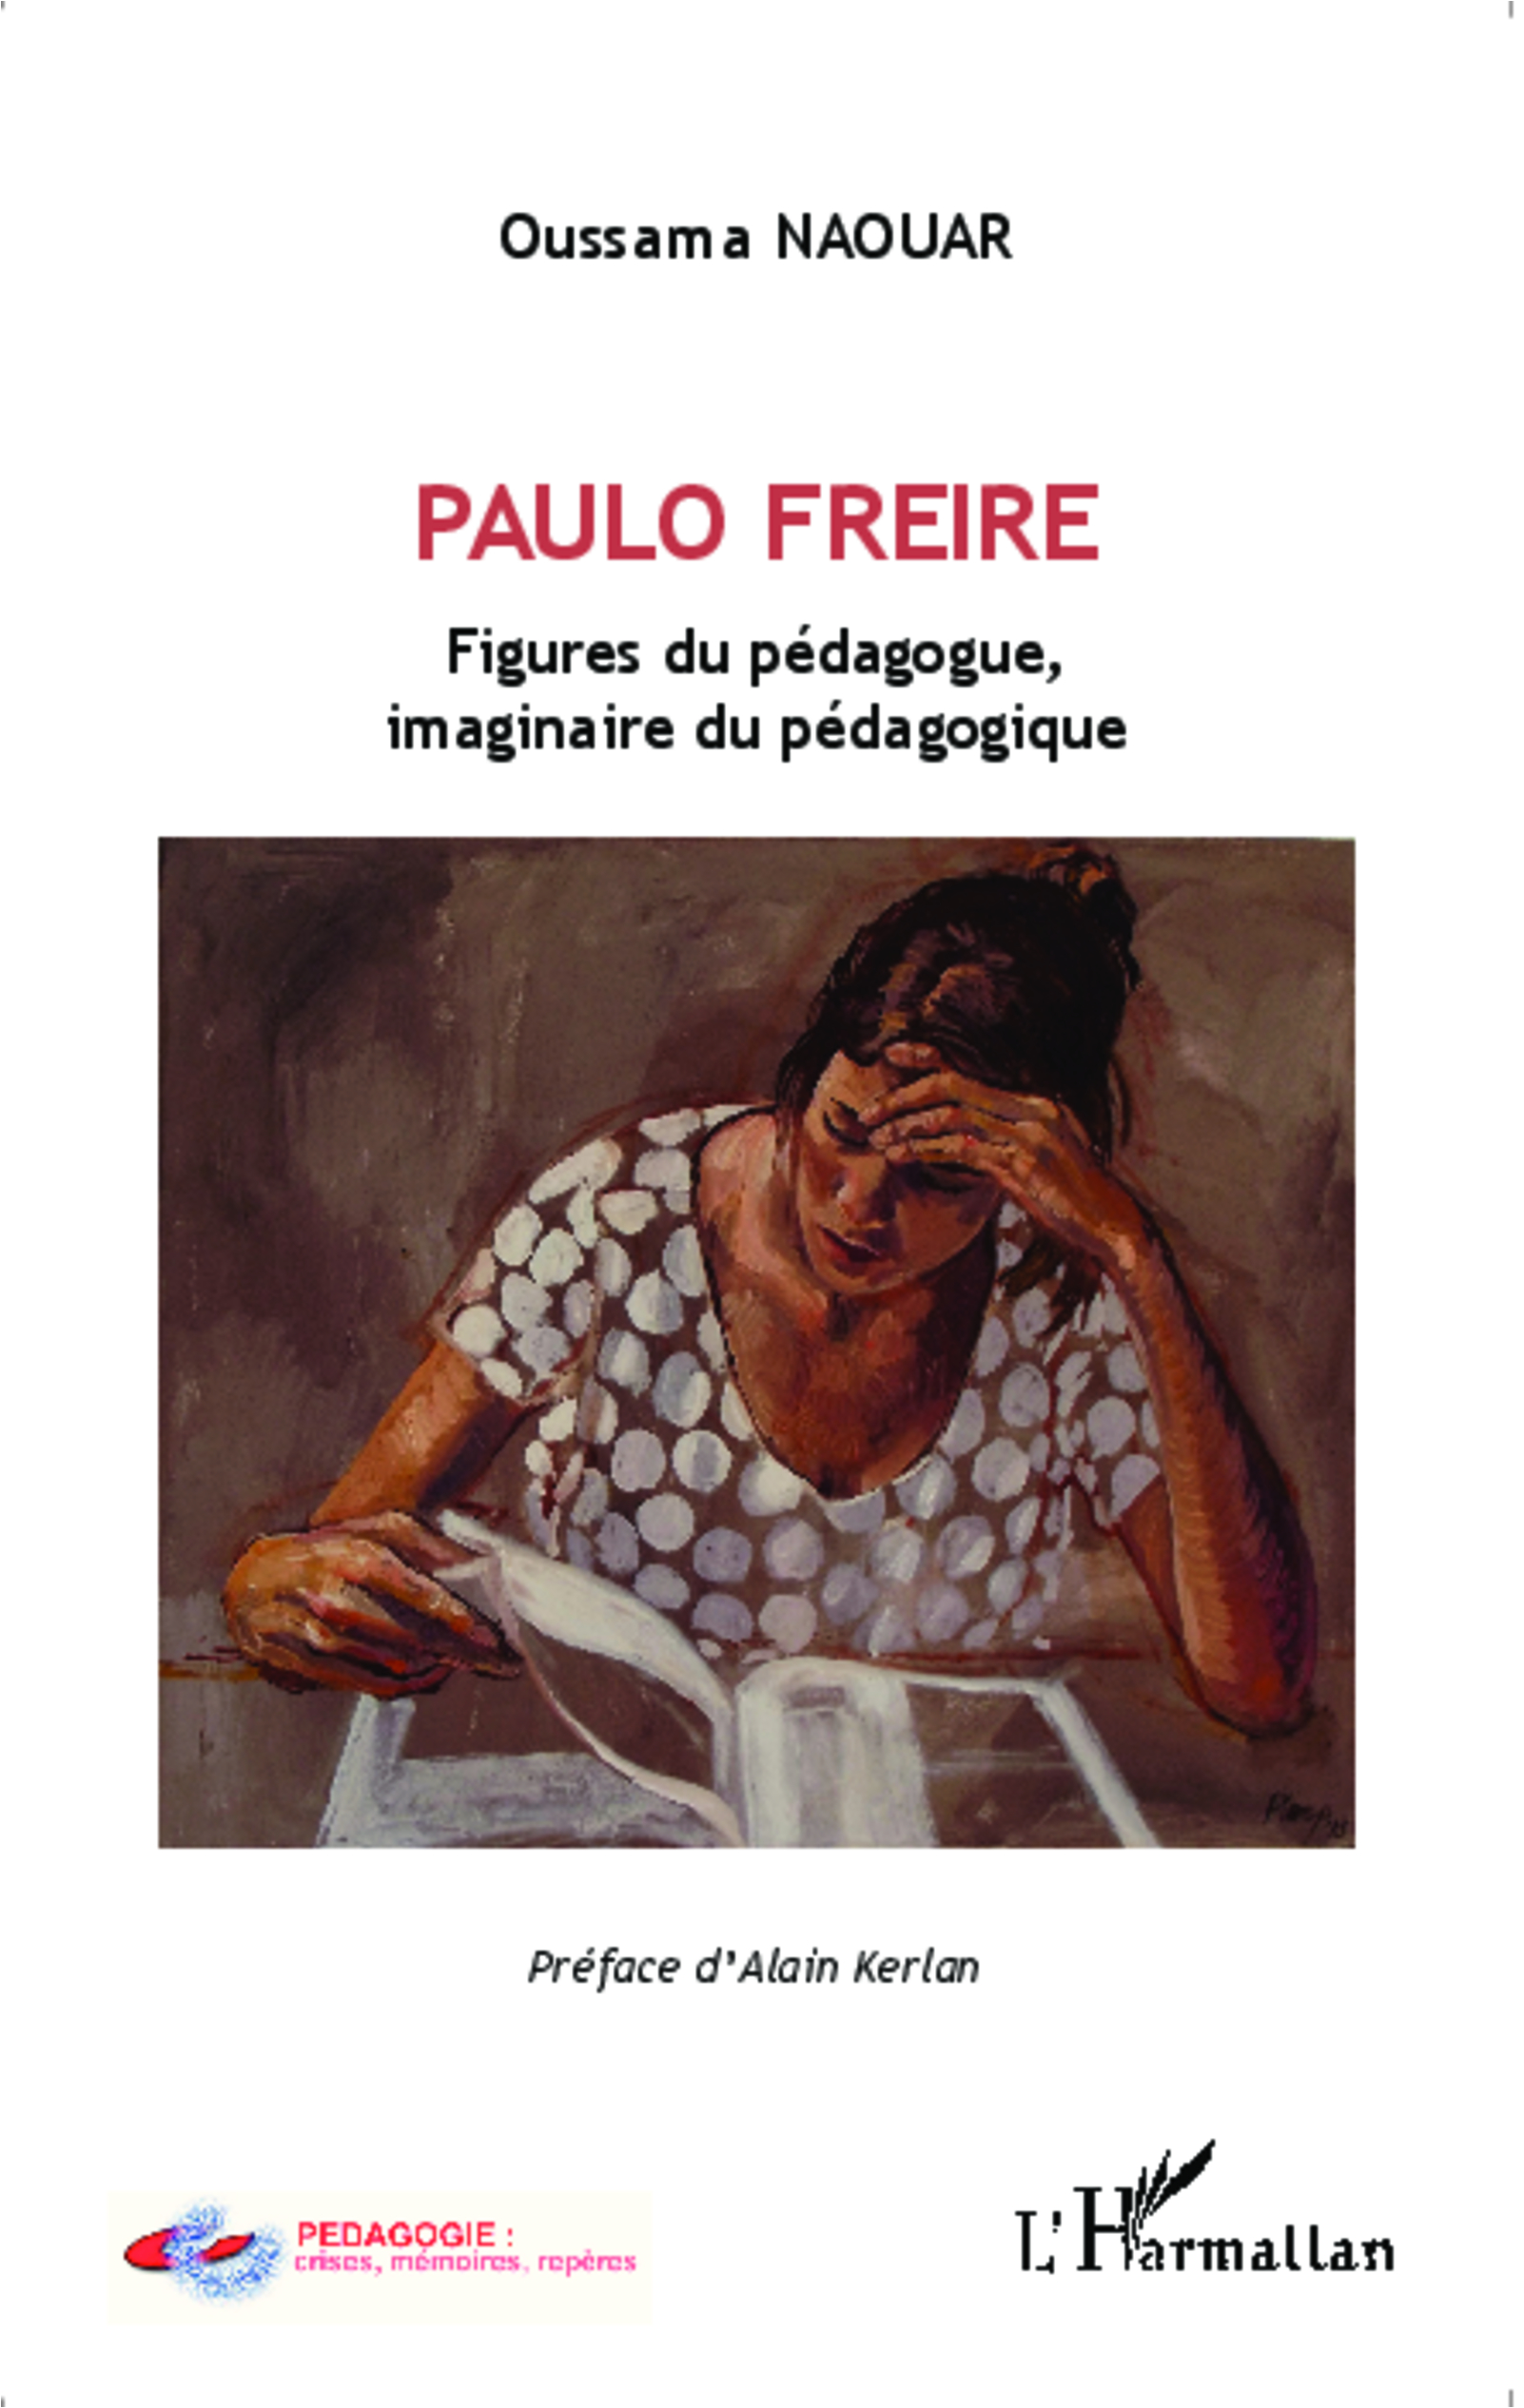 paulo freire pedagogue Paulo freire's pedagogy of the oppressed gives us a view into the education system and how it is becoming less of a good learning tool the education system has become less creative, and the teacher's are sucking the very supplement of life out of the lessons.